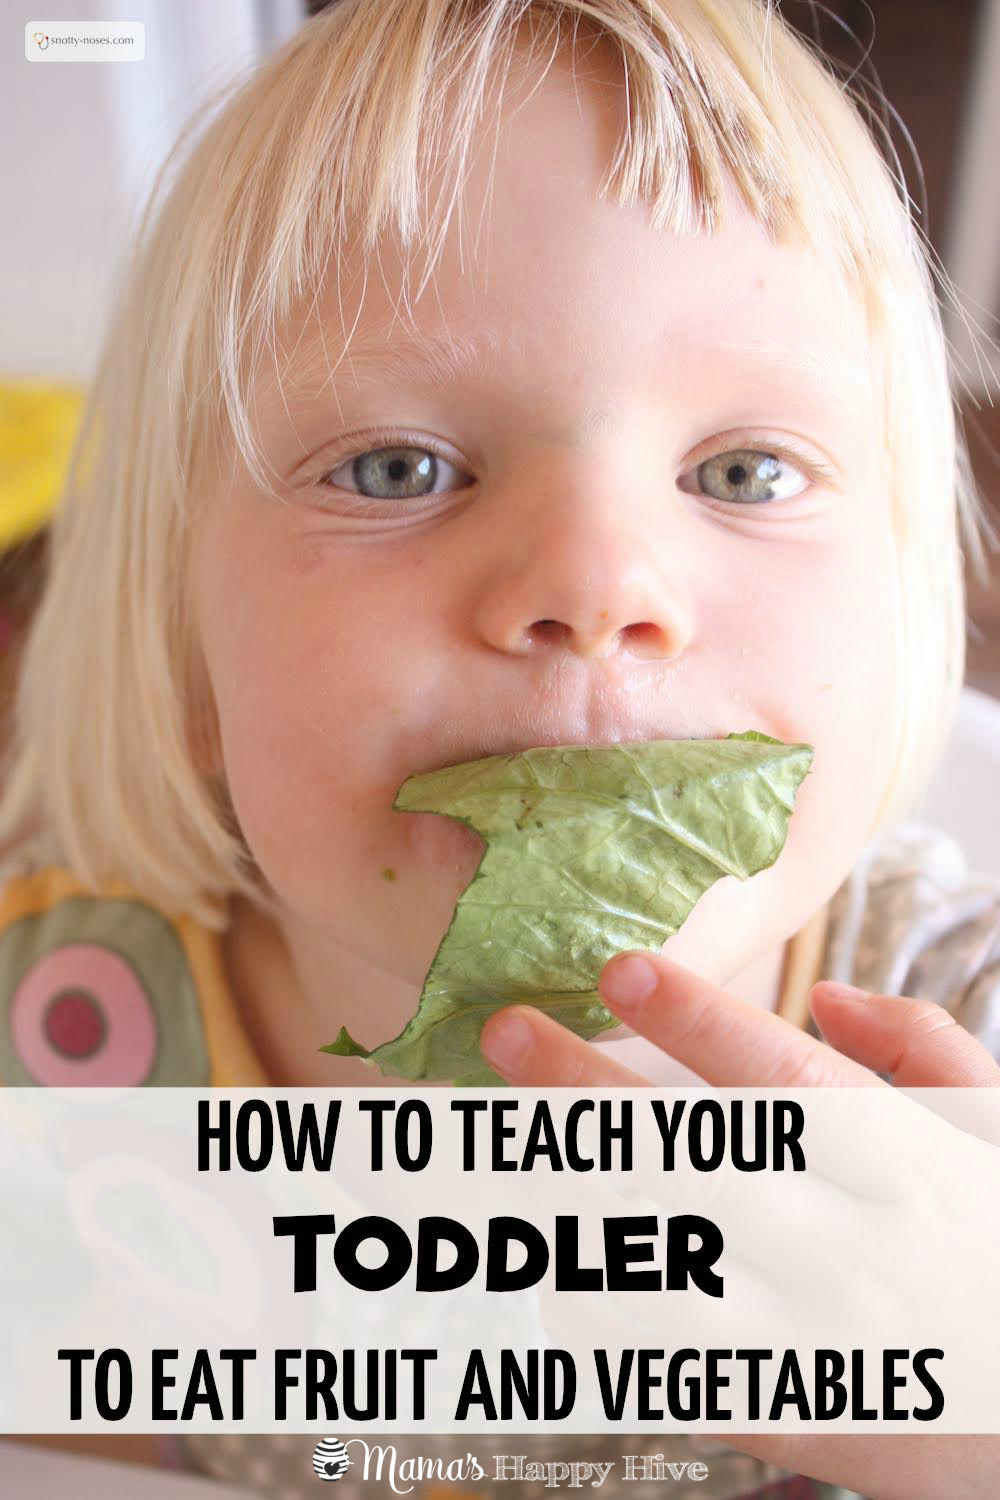 Life with toddlers is amazingly exciting. It's a fantastic age of exploration and learning. But it can also be hugely frustrating for both parents and kids. Every mundane task can take hours and mealtimes can become a battle field. Read more to learn how to teach your toddler to eat fruit and vegetables! - www.mamashappyhive.com